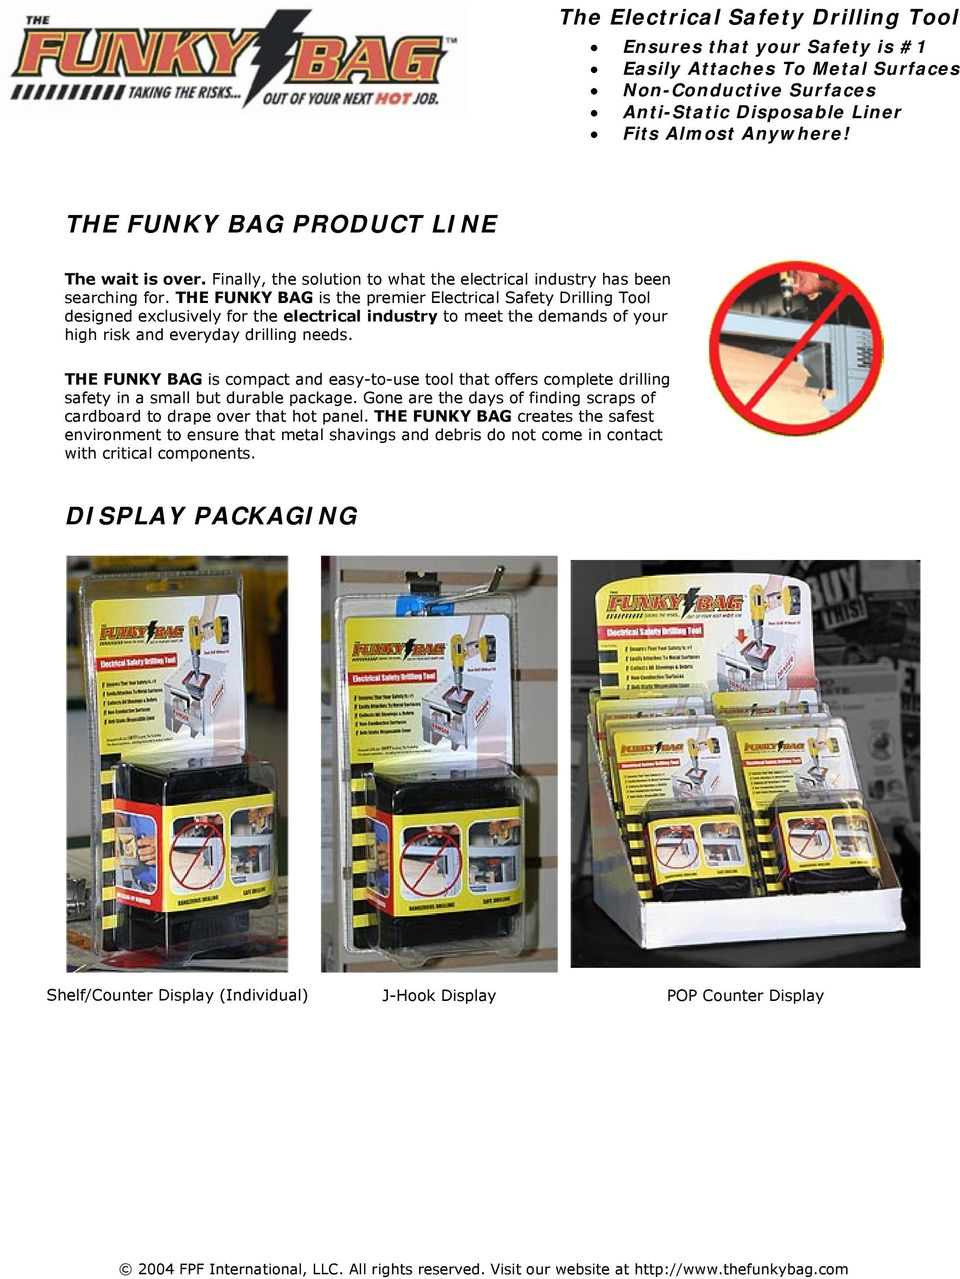 THE FUNKY BAG is compact and easy-to-use tool that offers complete drilling safety in a small but durable package.